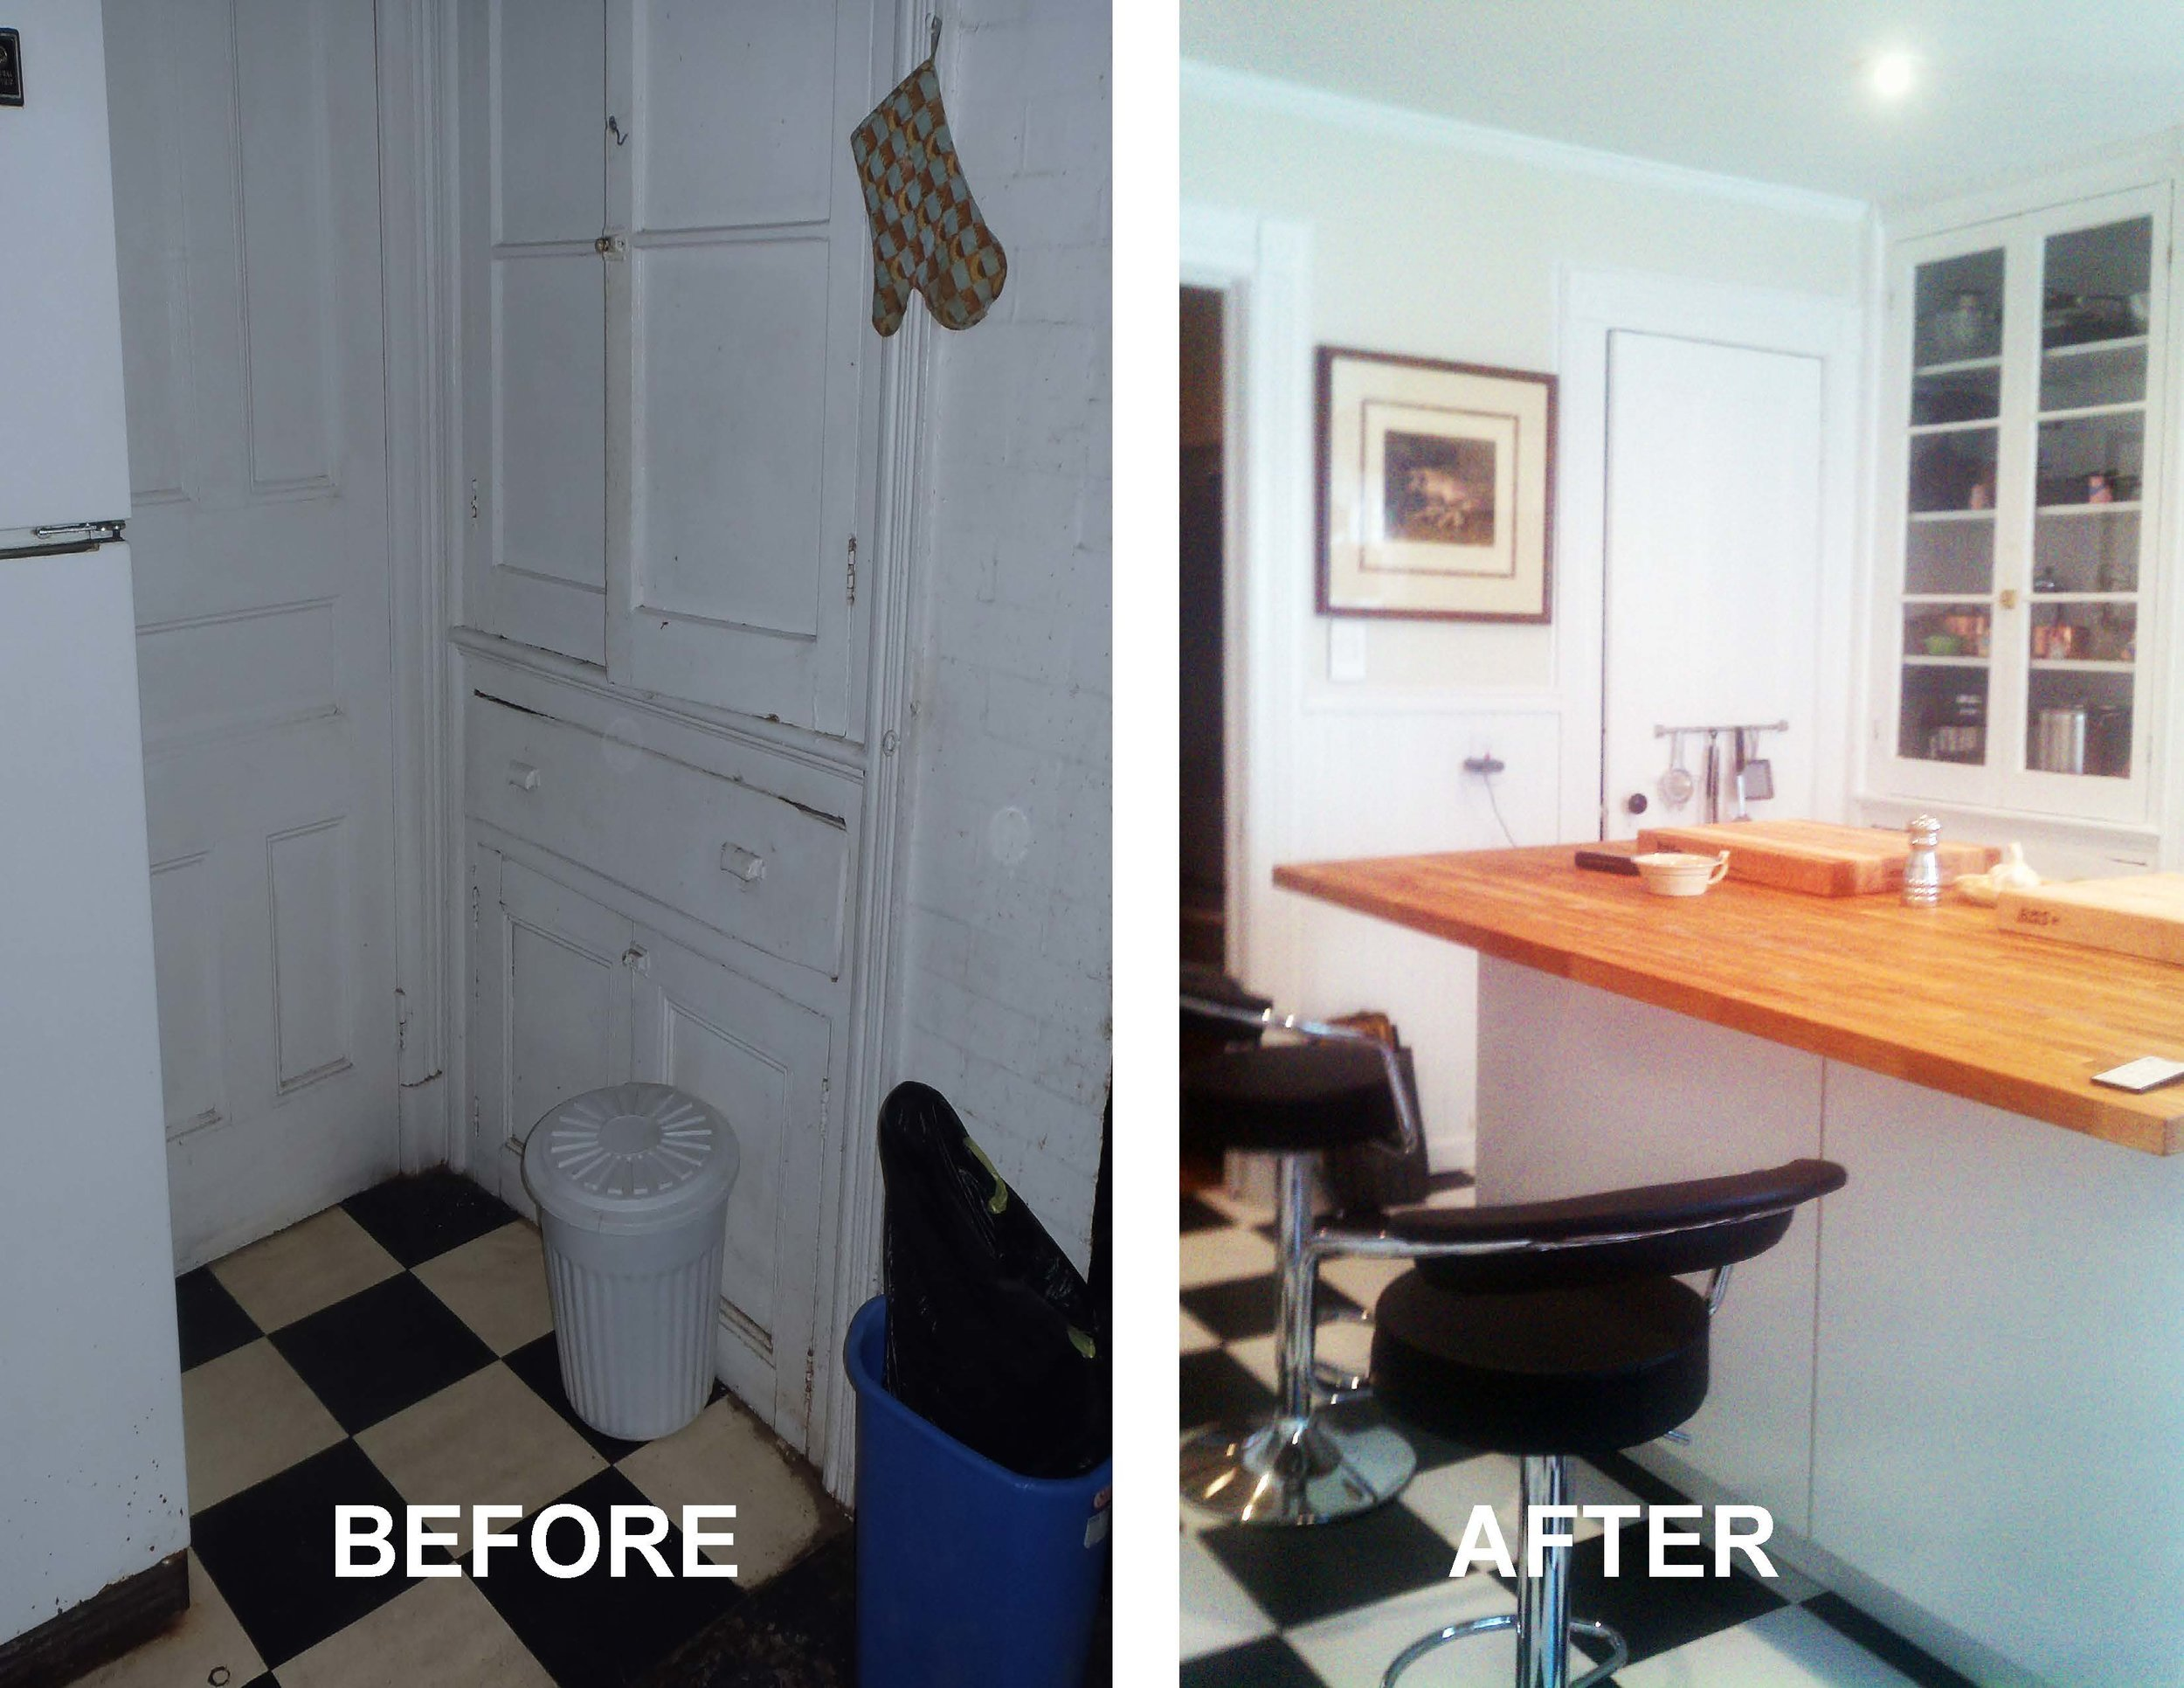 BEFORE AND AFTER PHOTOS_Page_4.jpg